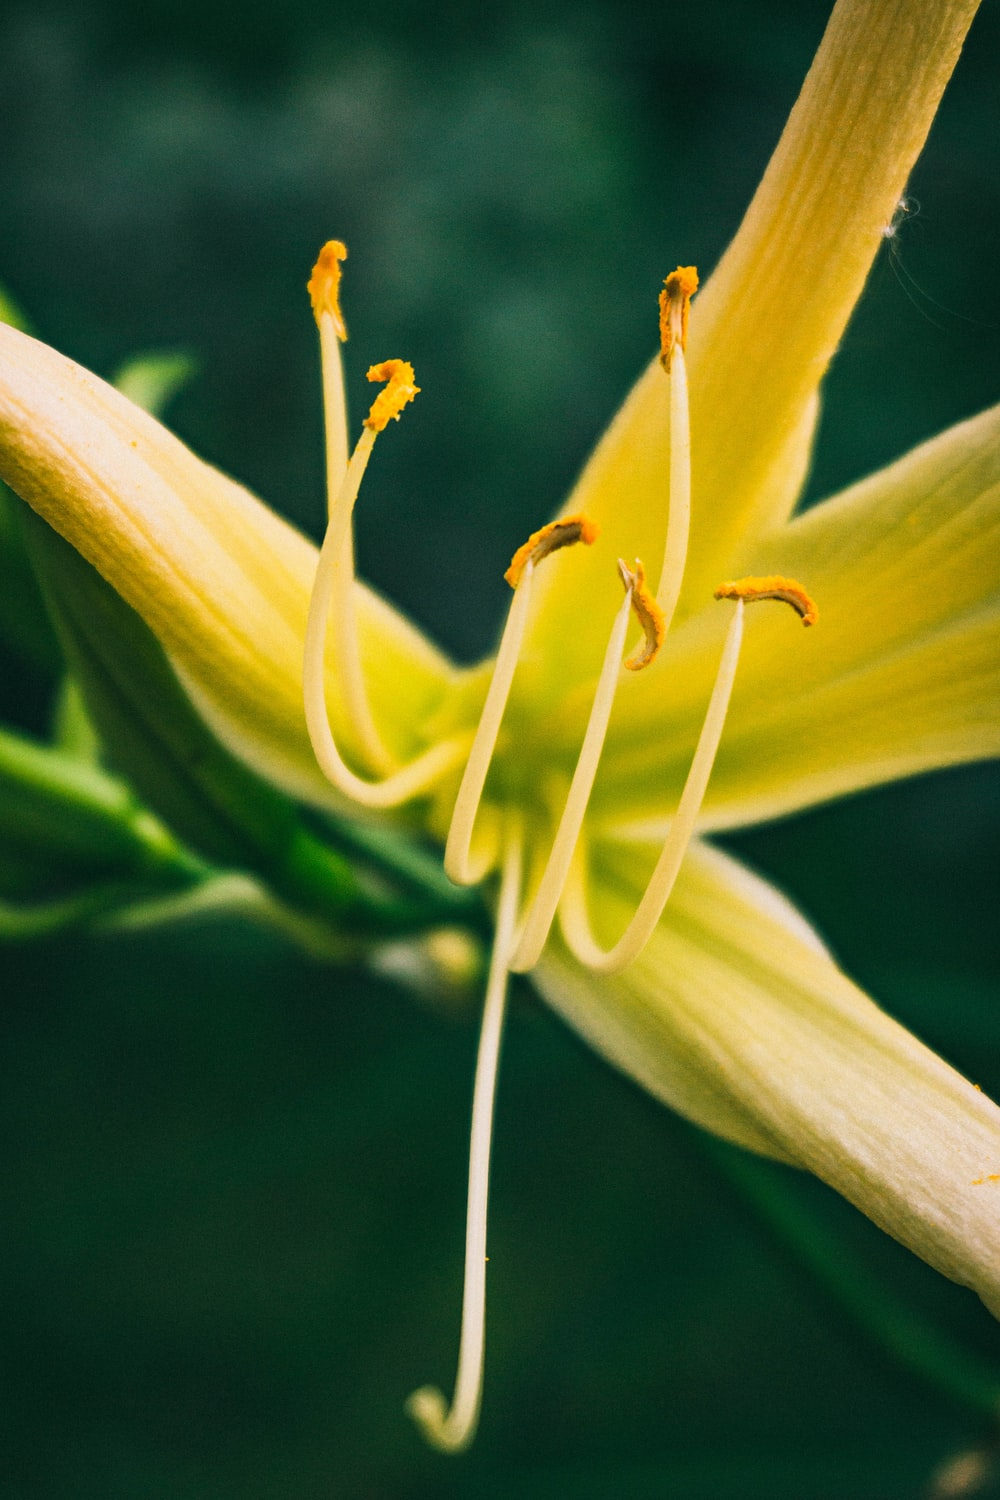 yellow flower bud in close up photography